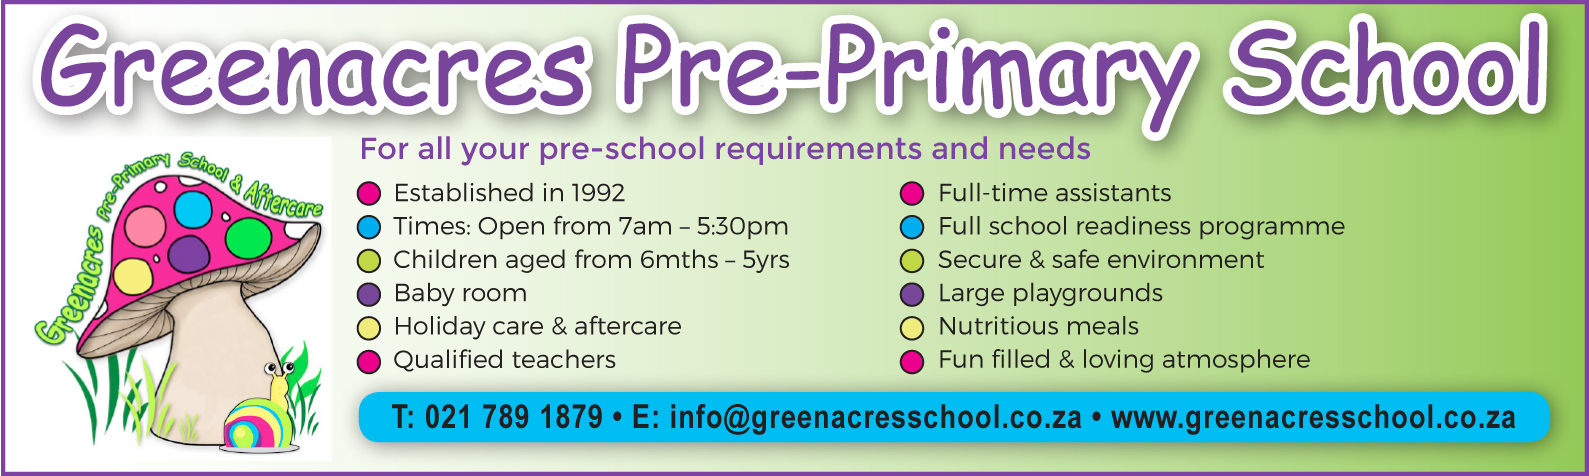 Greenacres Pre-Primary School